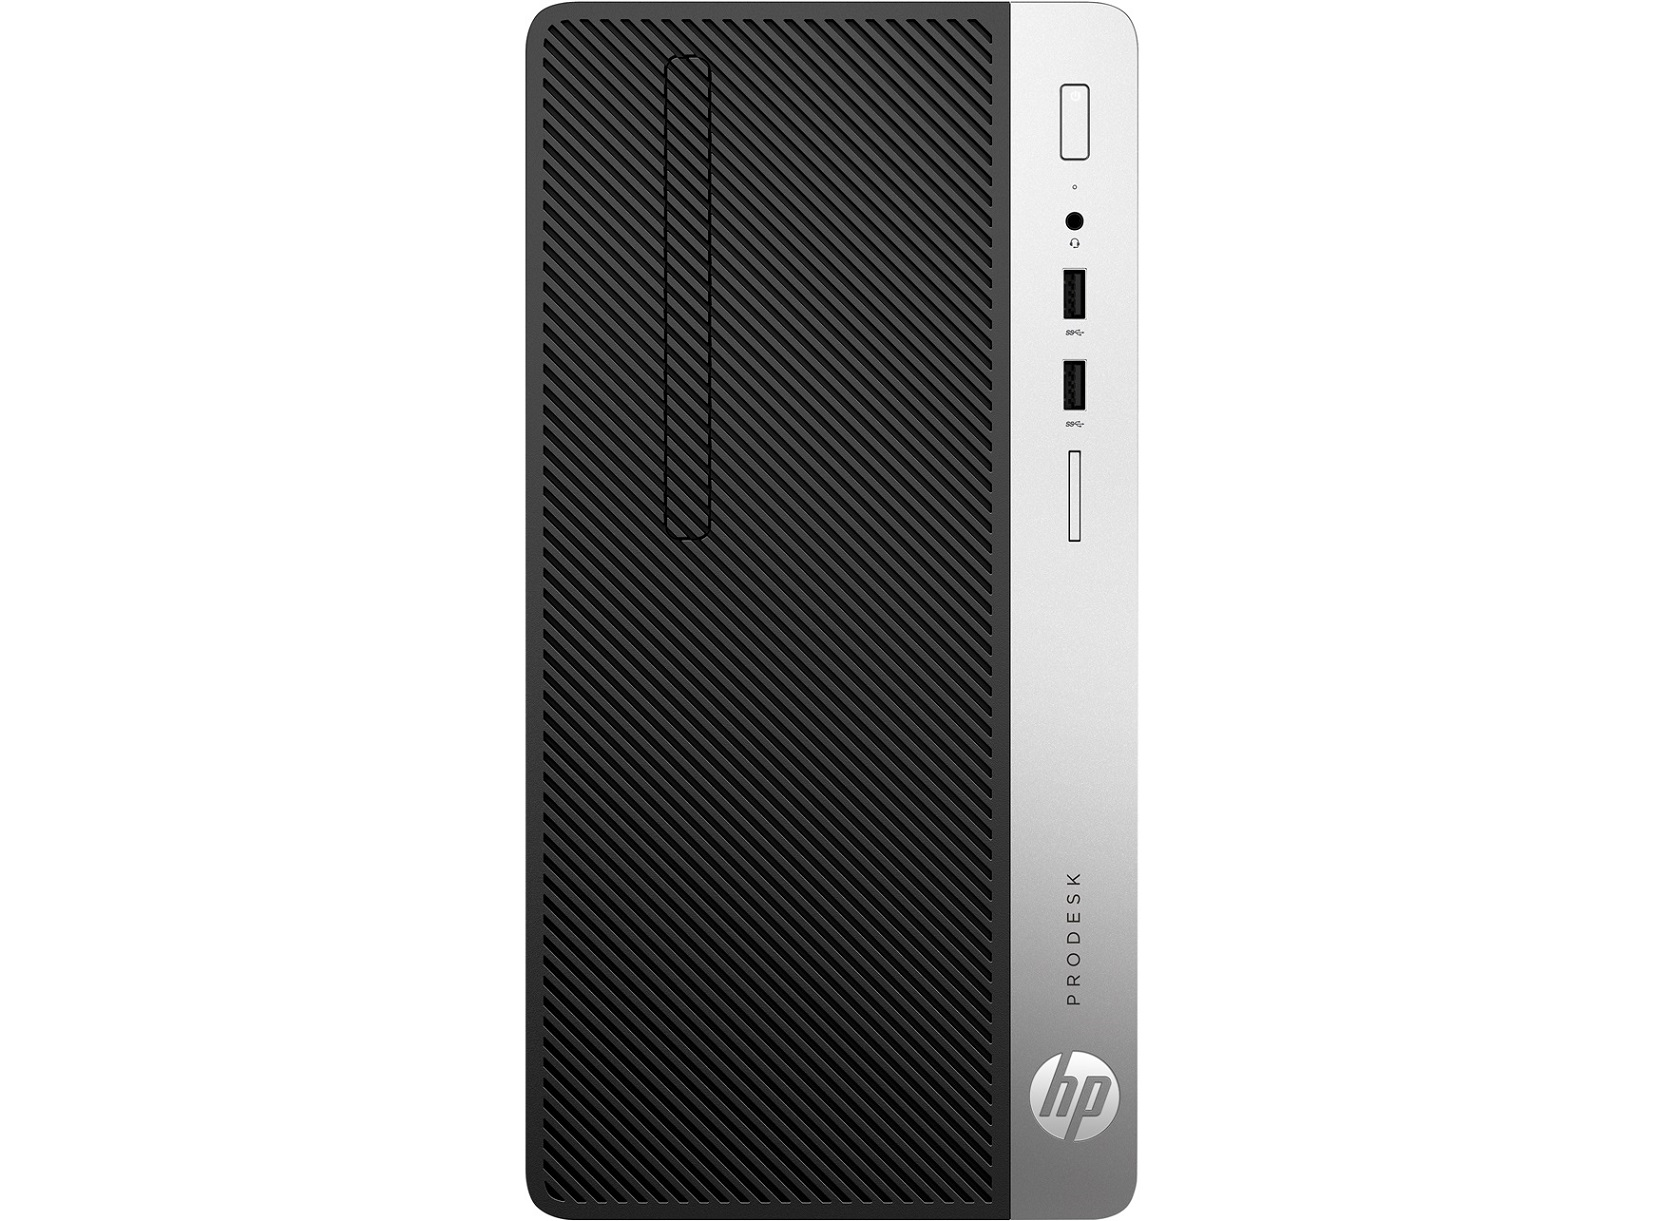 HP ProDesk 400 G5 MT i7-8700/8GB/256SSD/DVD/W10P